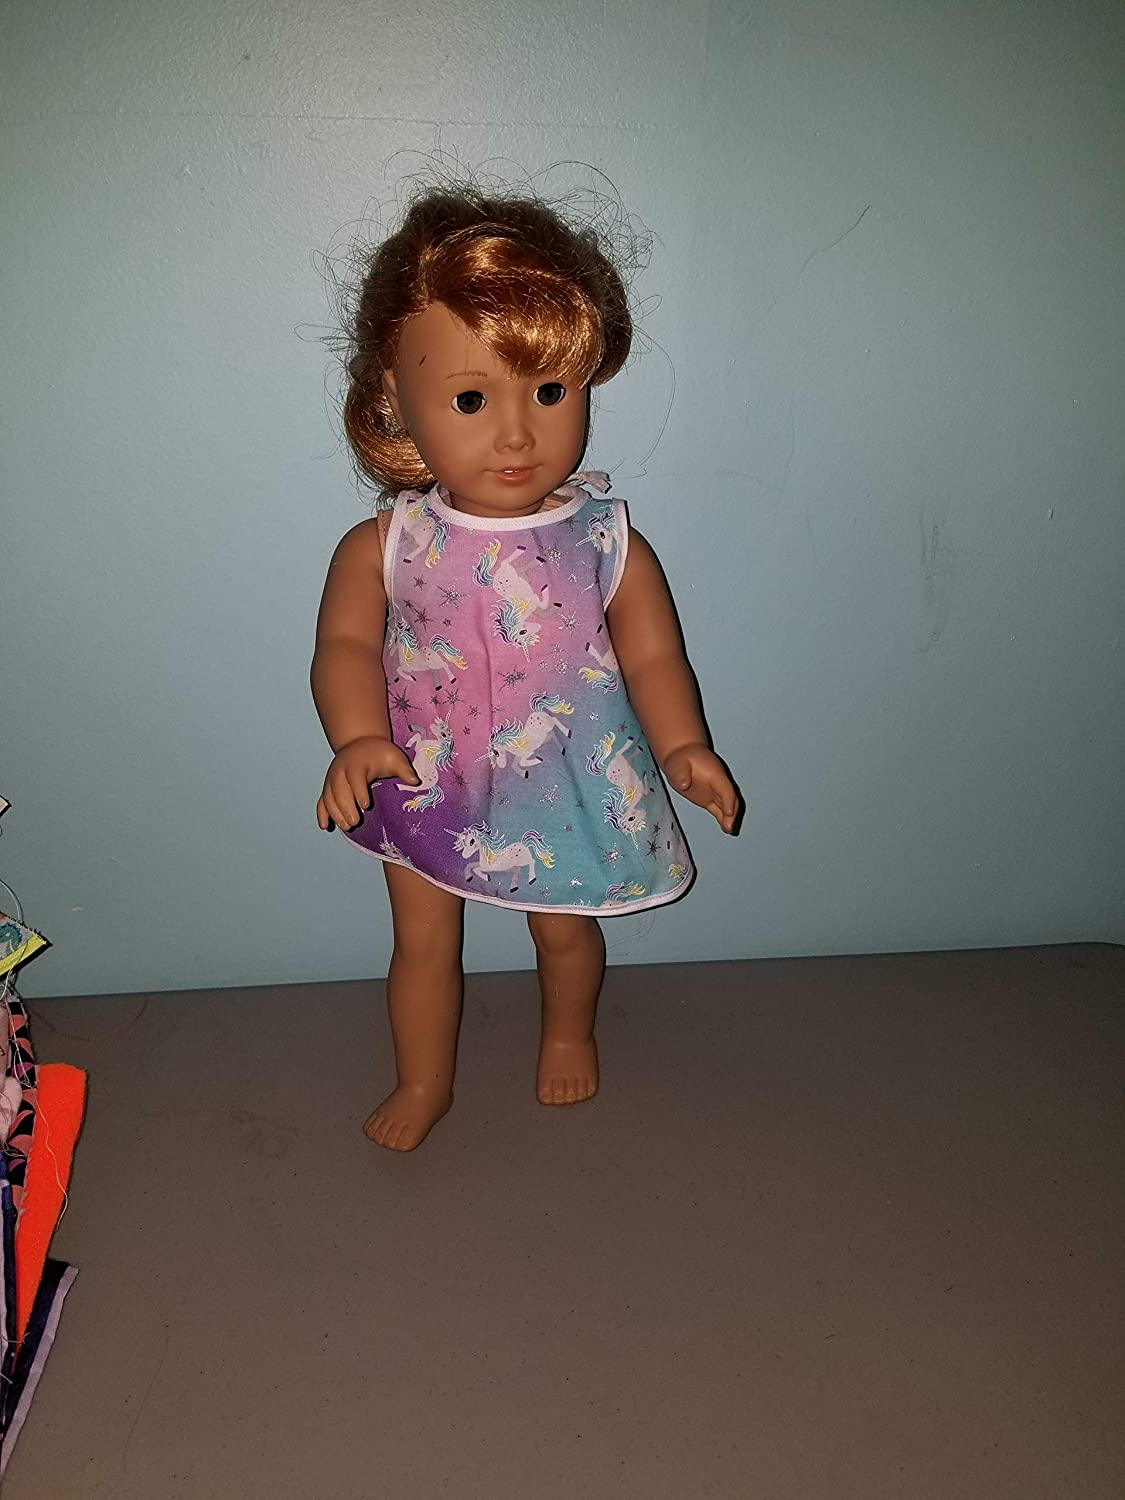 18 Doll Colorful Unicorn Dress Retro fits American girl our generation my life